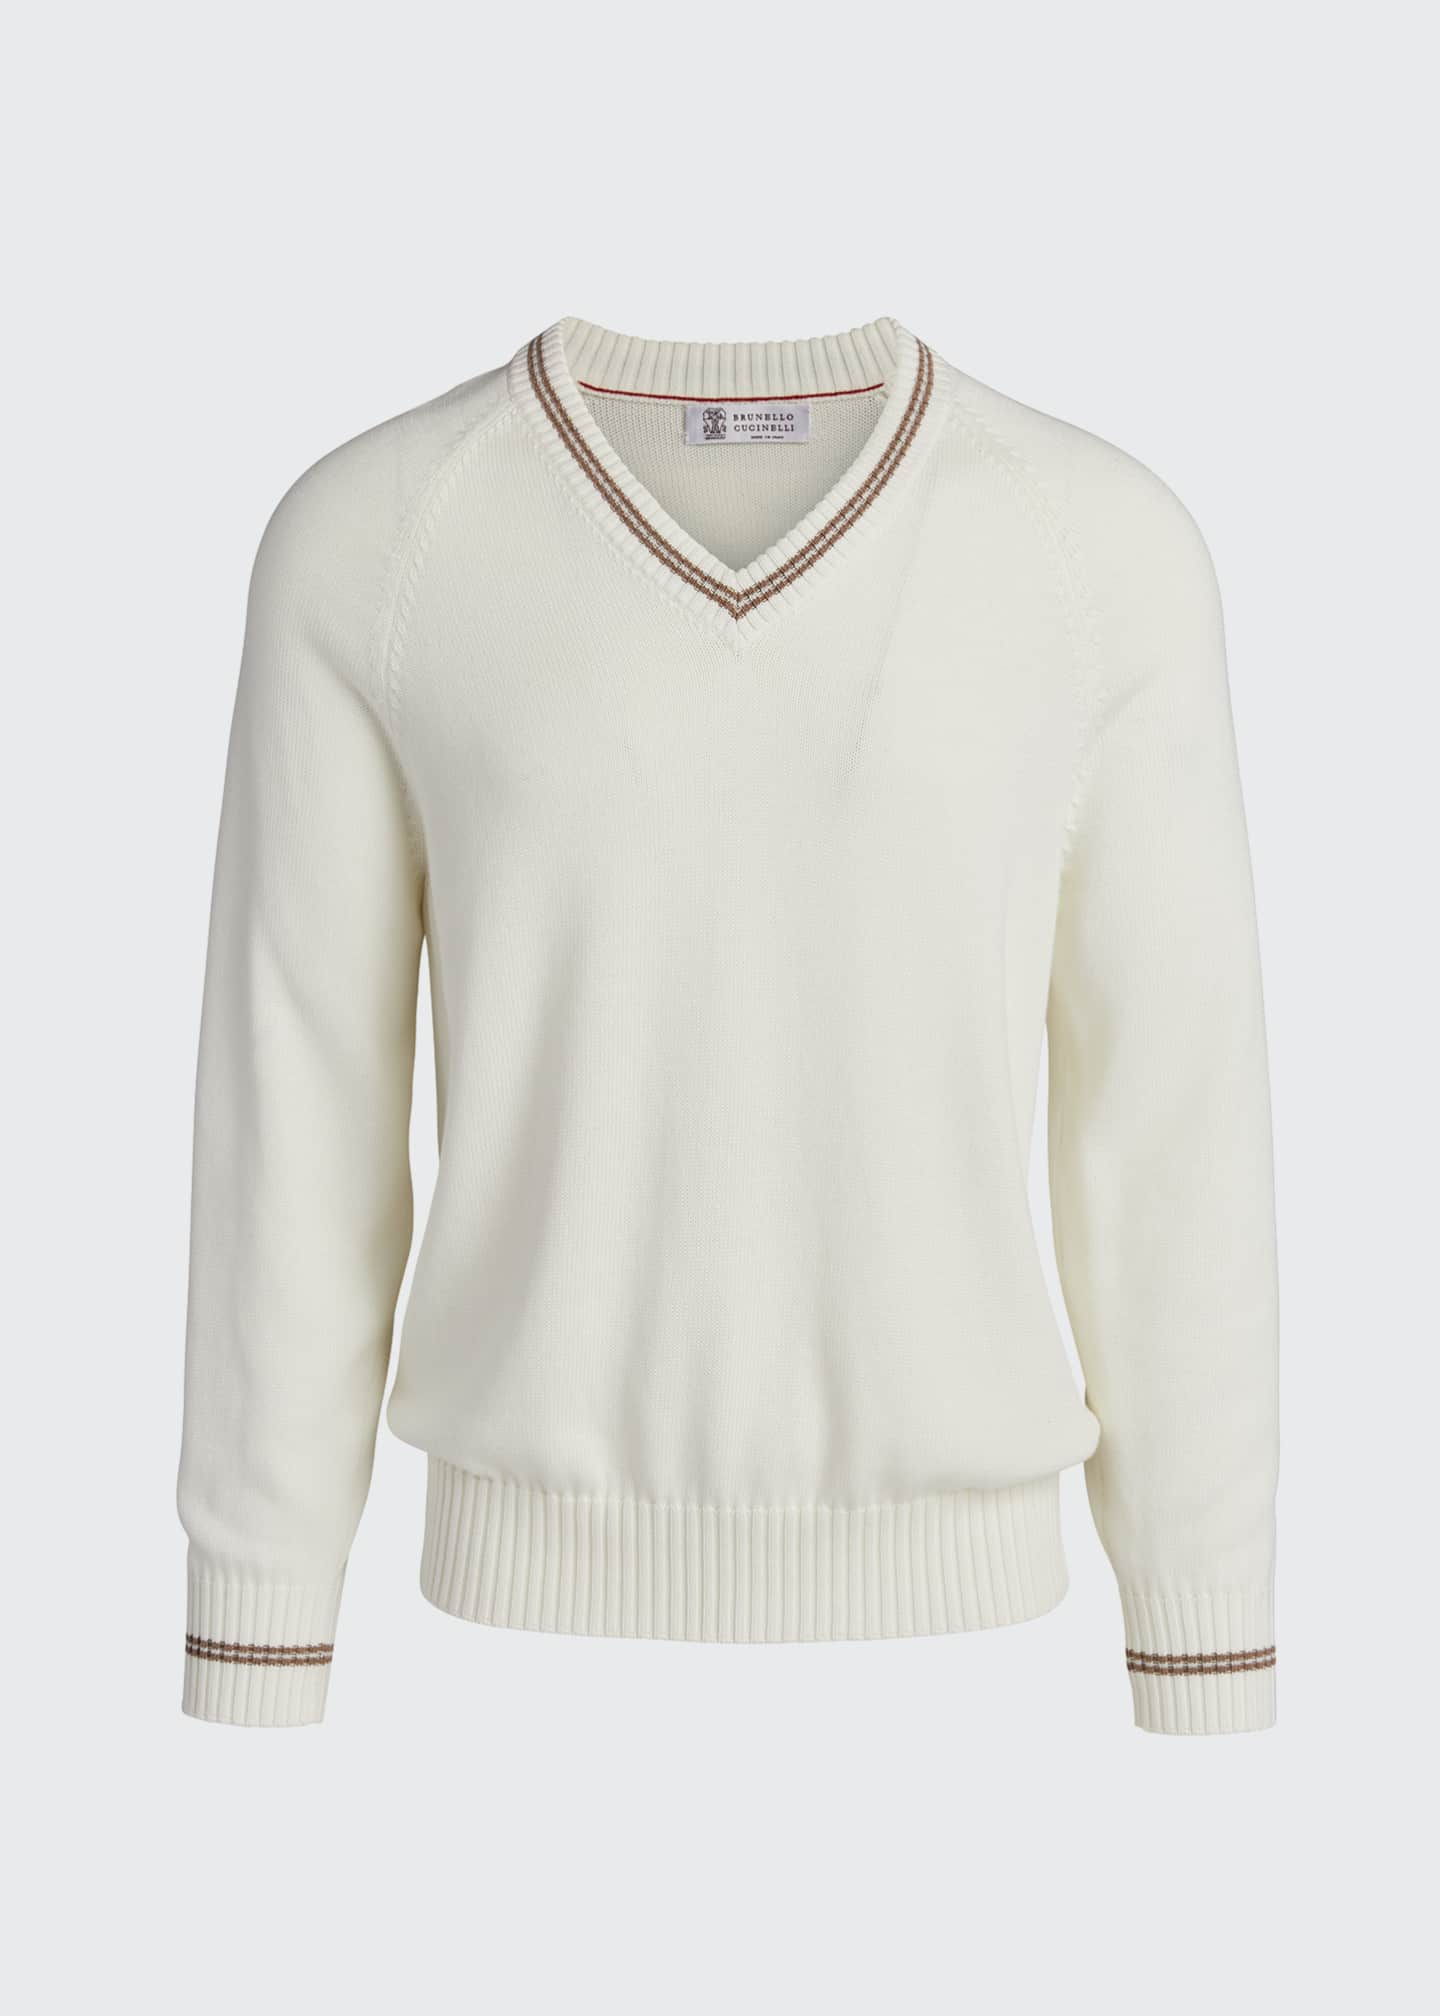 Image 5 of 5: Men's V-Neck Sweater with Contrast Tipping